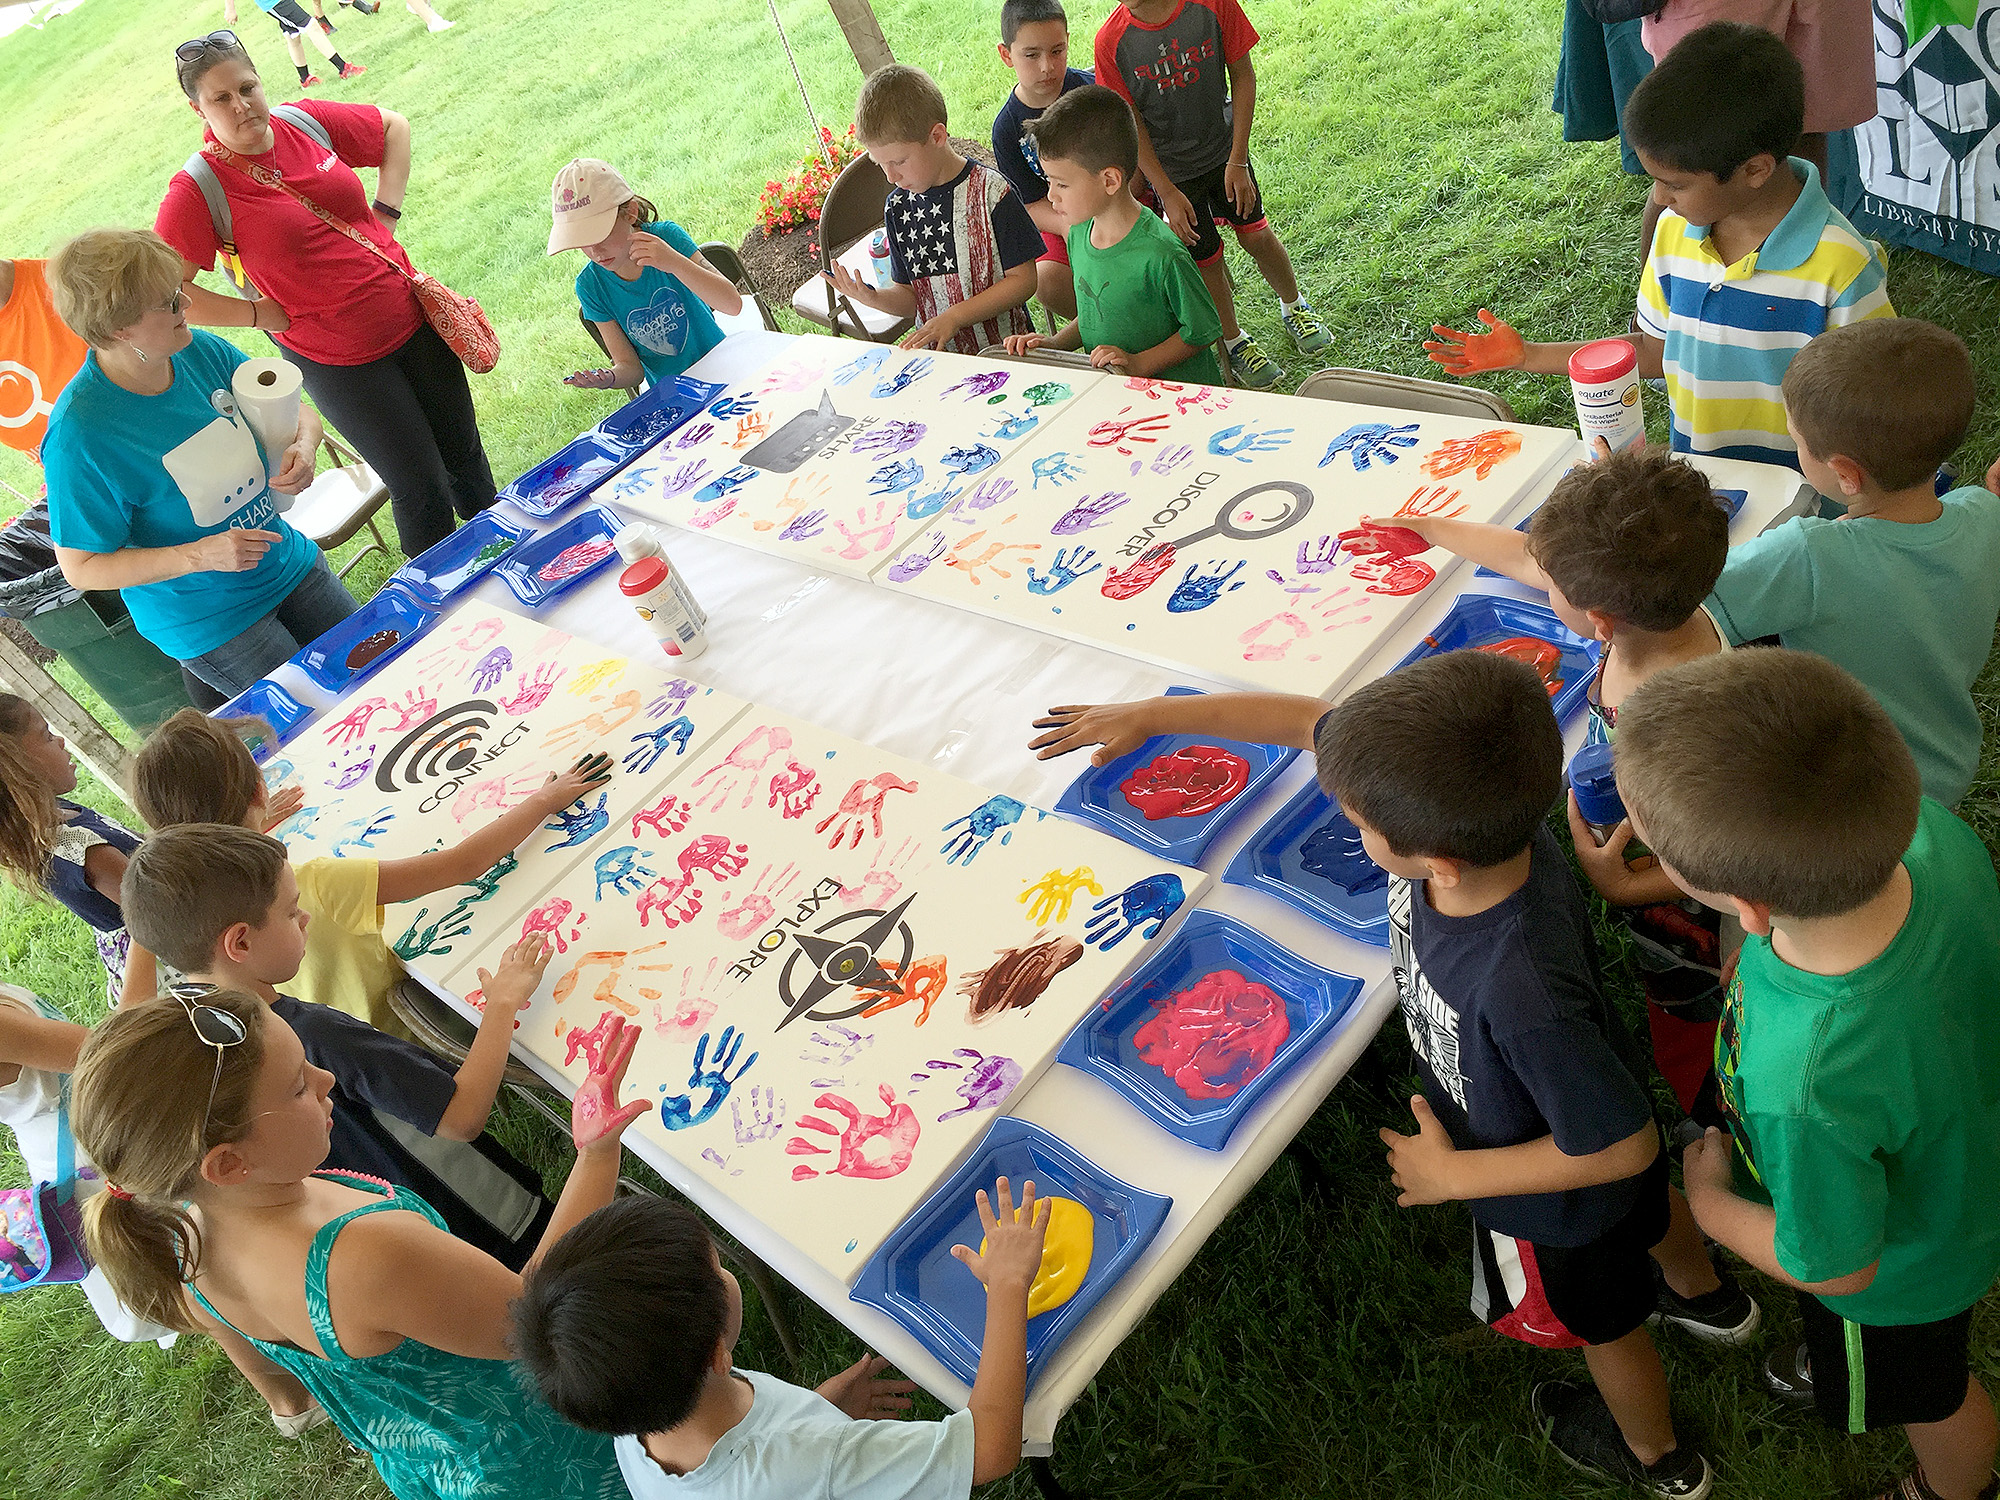 (above) Children participating in the creation of the Somerset County Community Mural which will be on tour to all of the Somerset County libraries